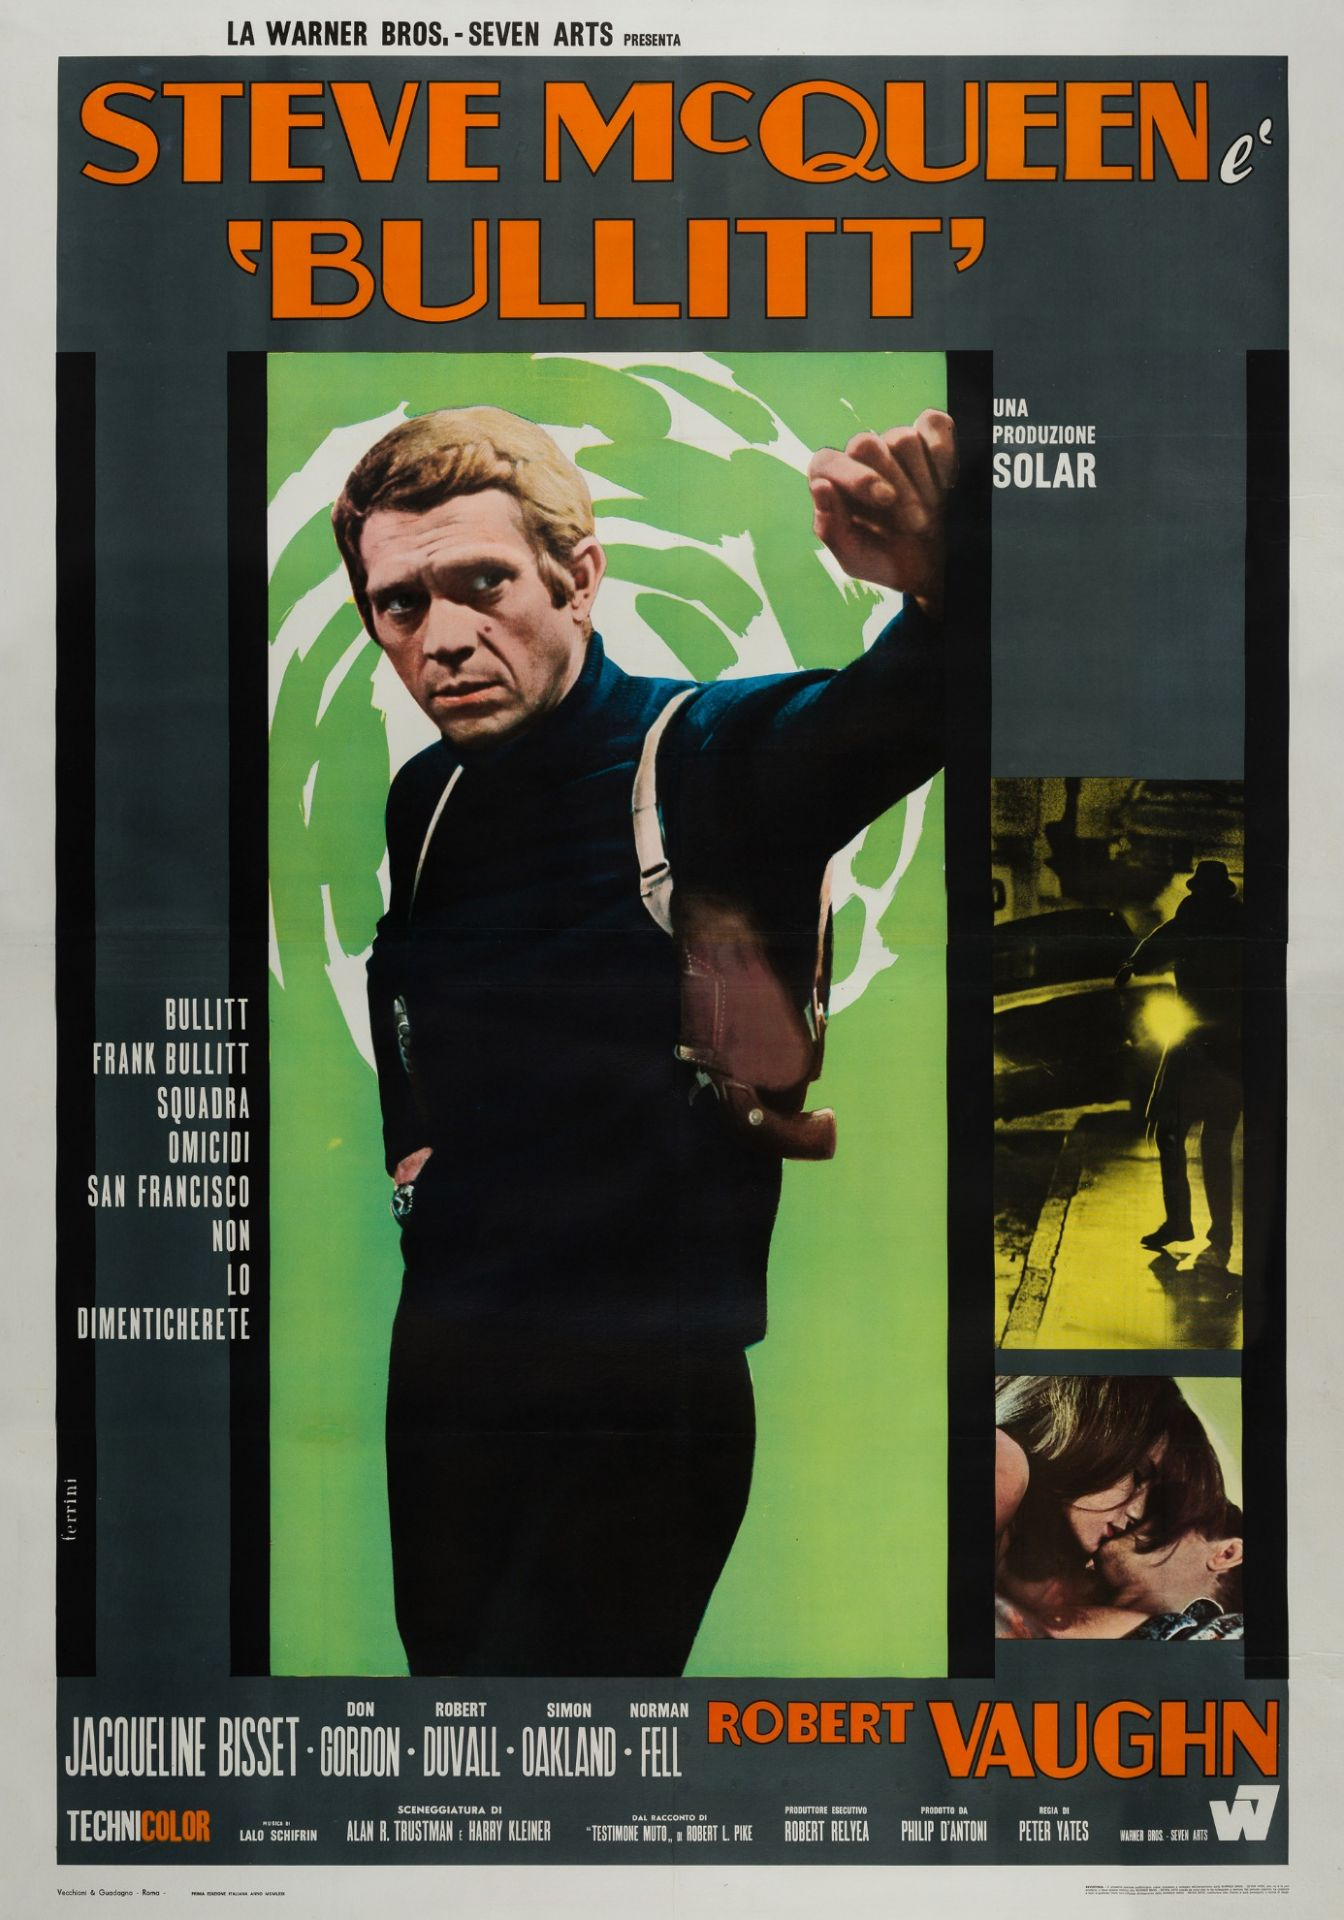 Original Bullitt 1968 Italian 4 Sheet Film Movie Poster, Ferrini, Steve McQueen